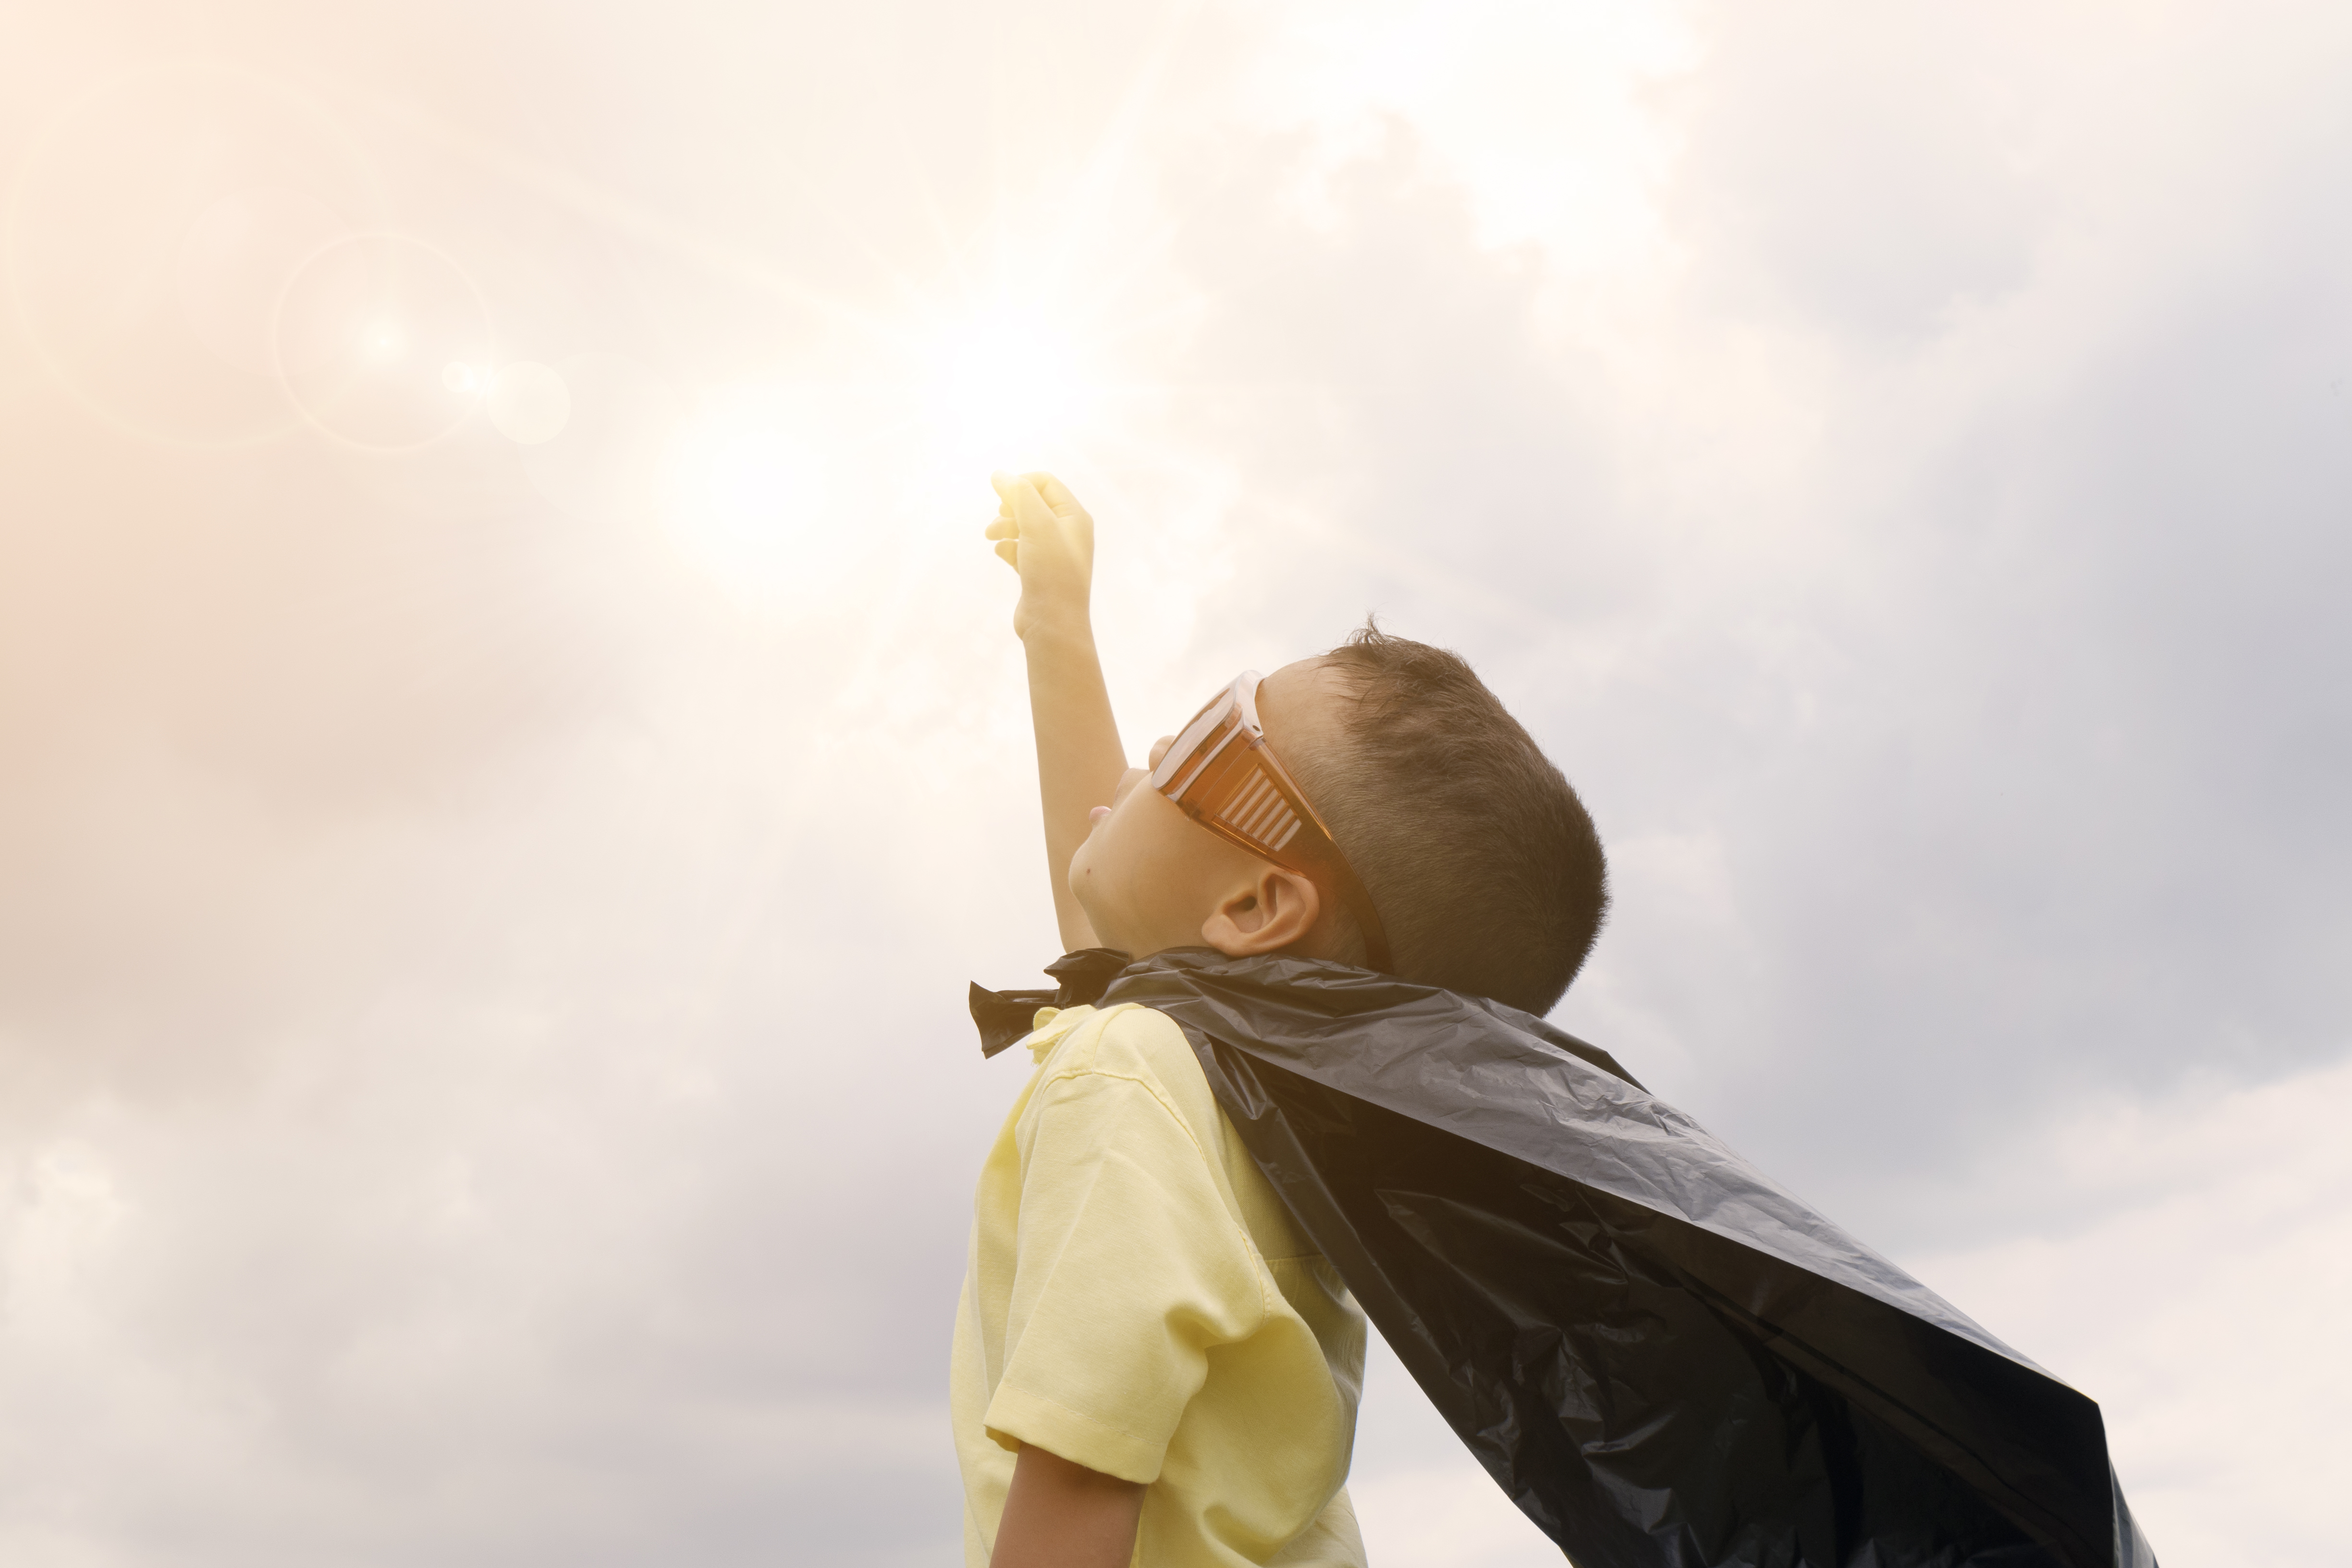 Free Photography Stock Boy Rising Up His Hand Wearing Black Cape Free Stock Photo